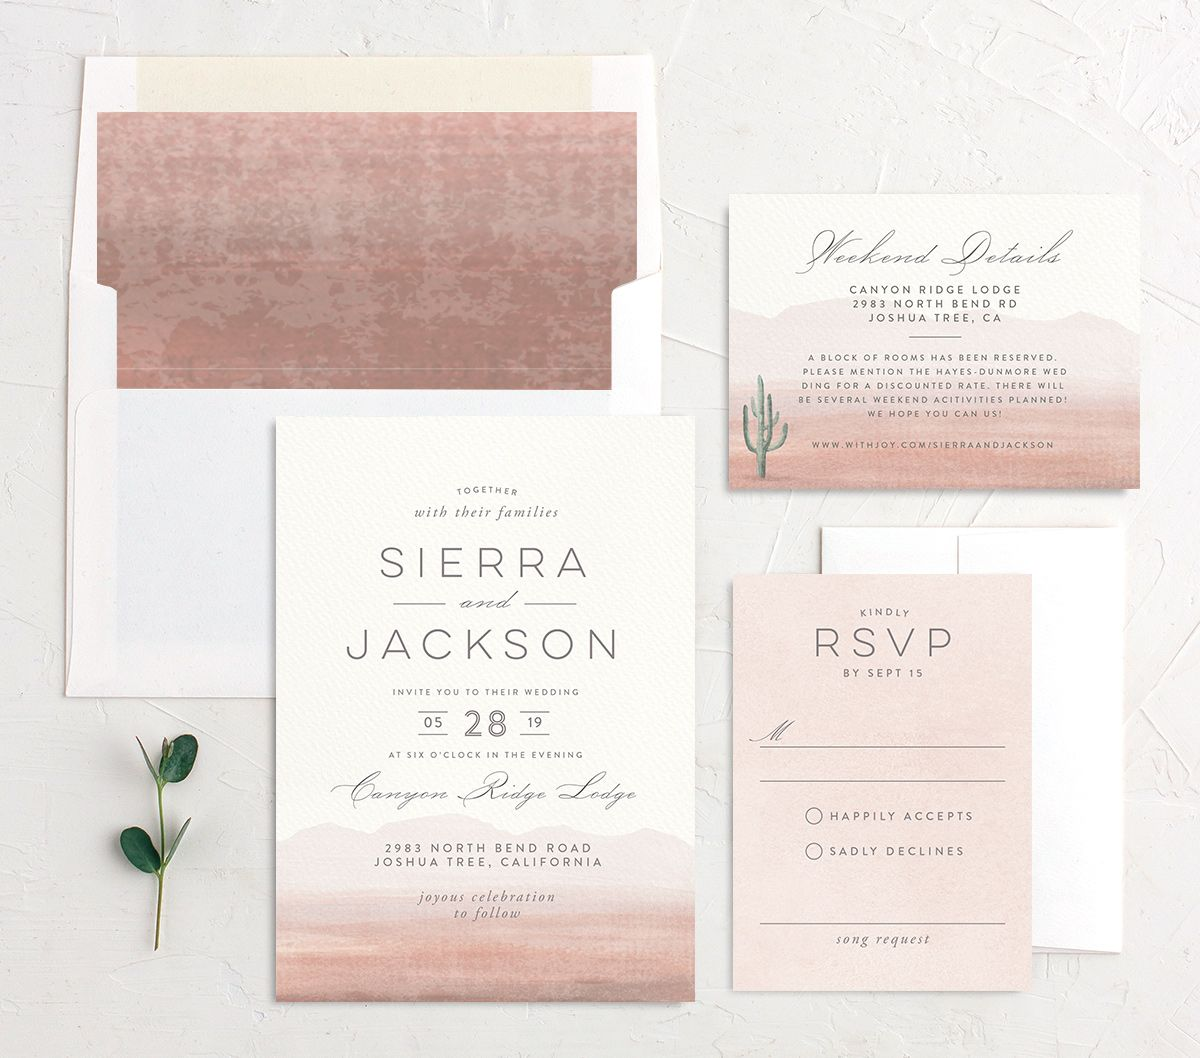 painted desert wedding invitation stationery suite in pink